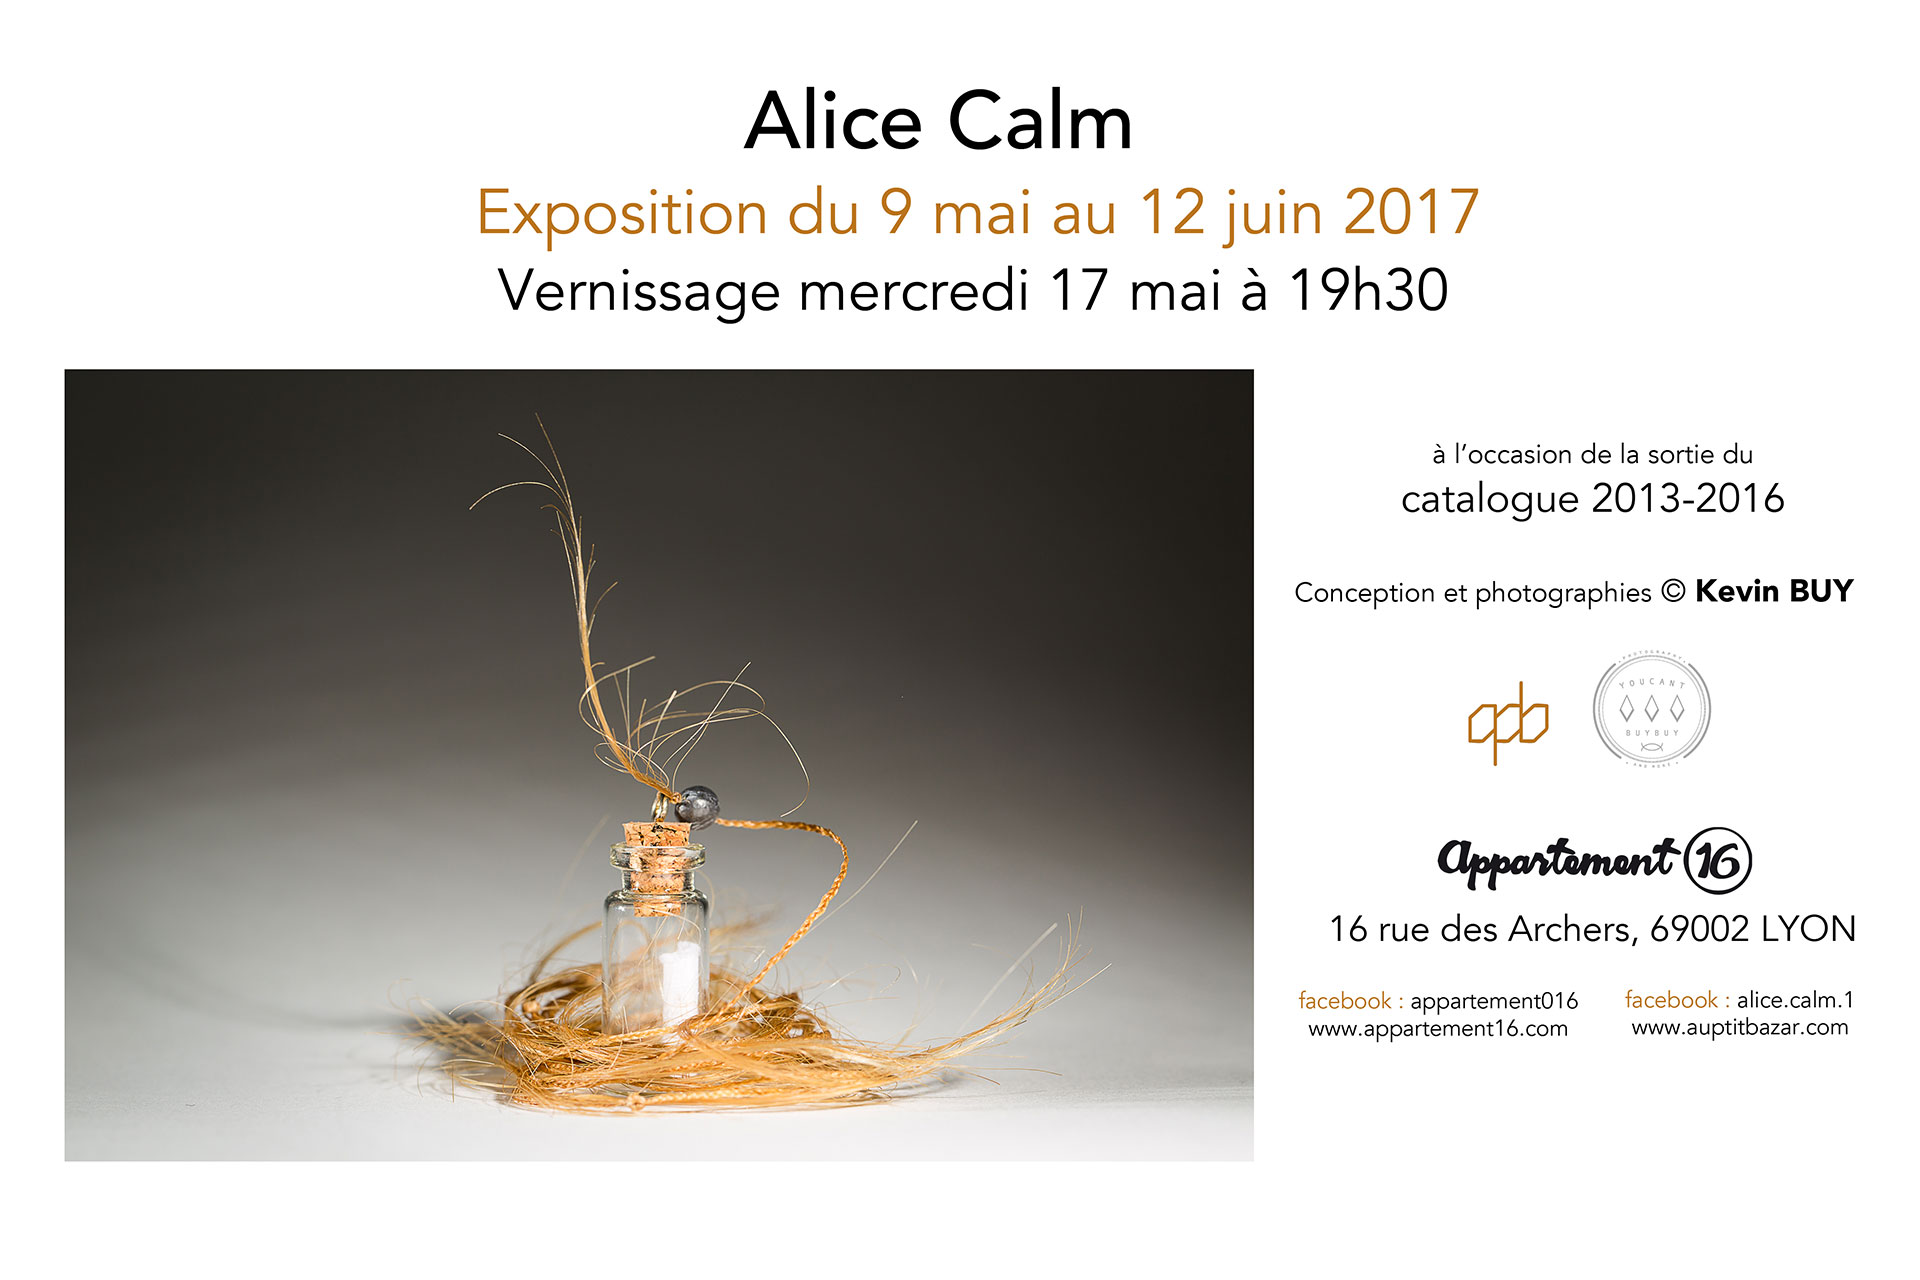 Exposition appartement 16 - Alice Calm